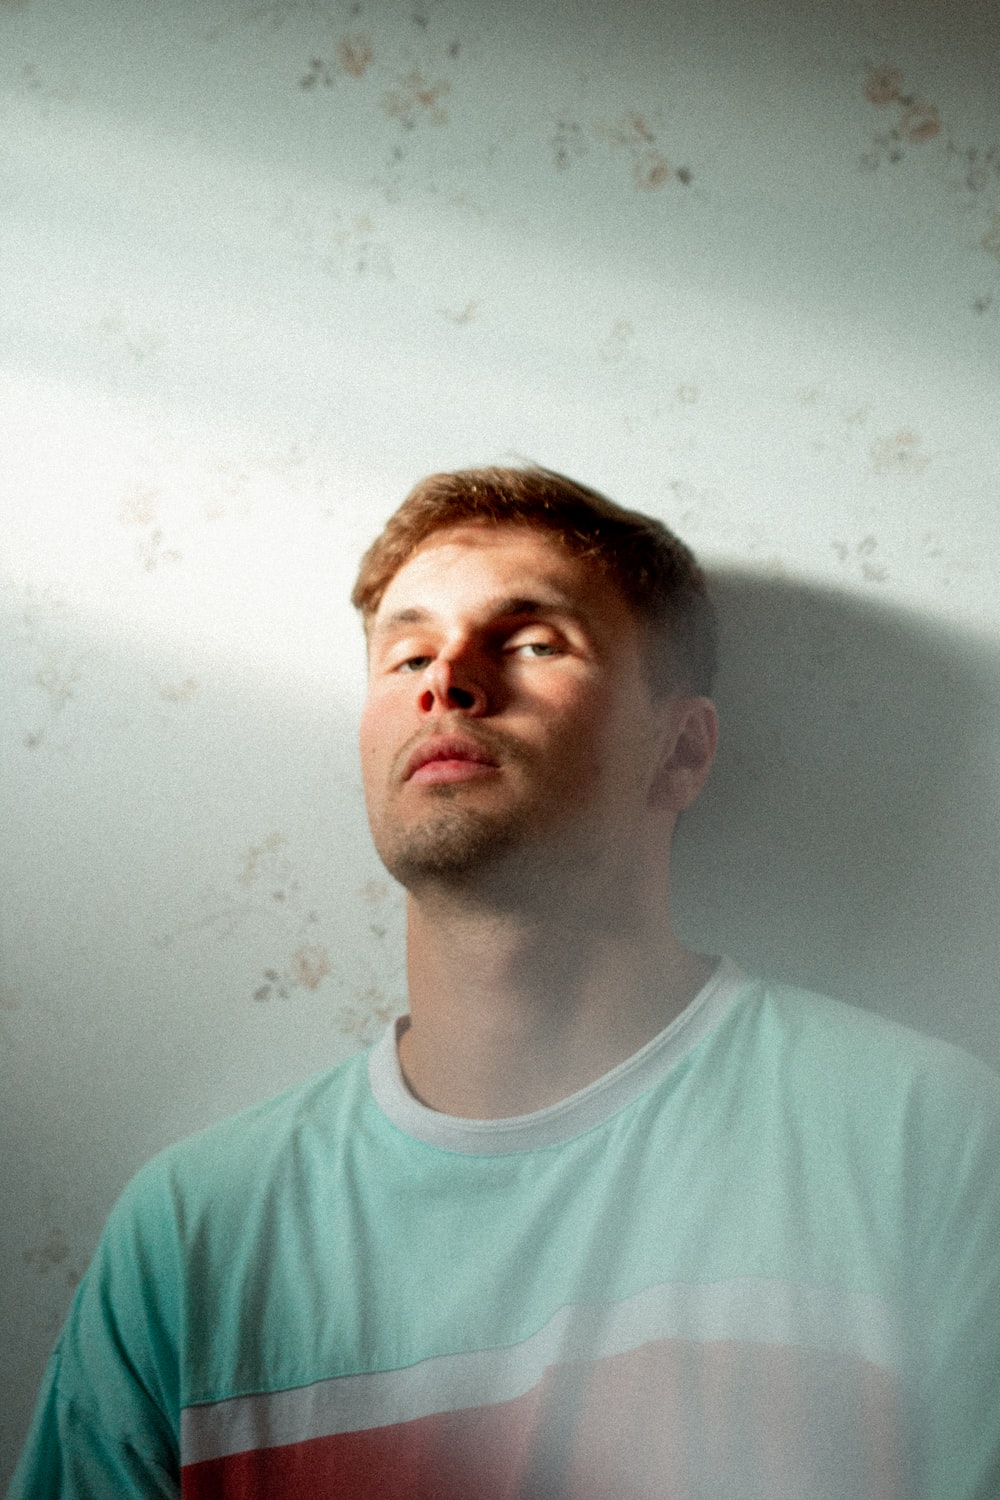 man leaning on white painted wall